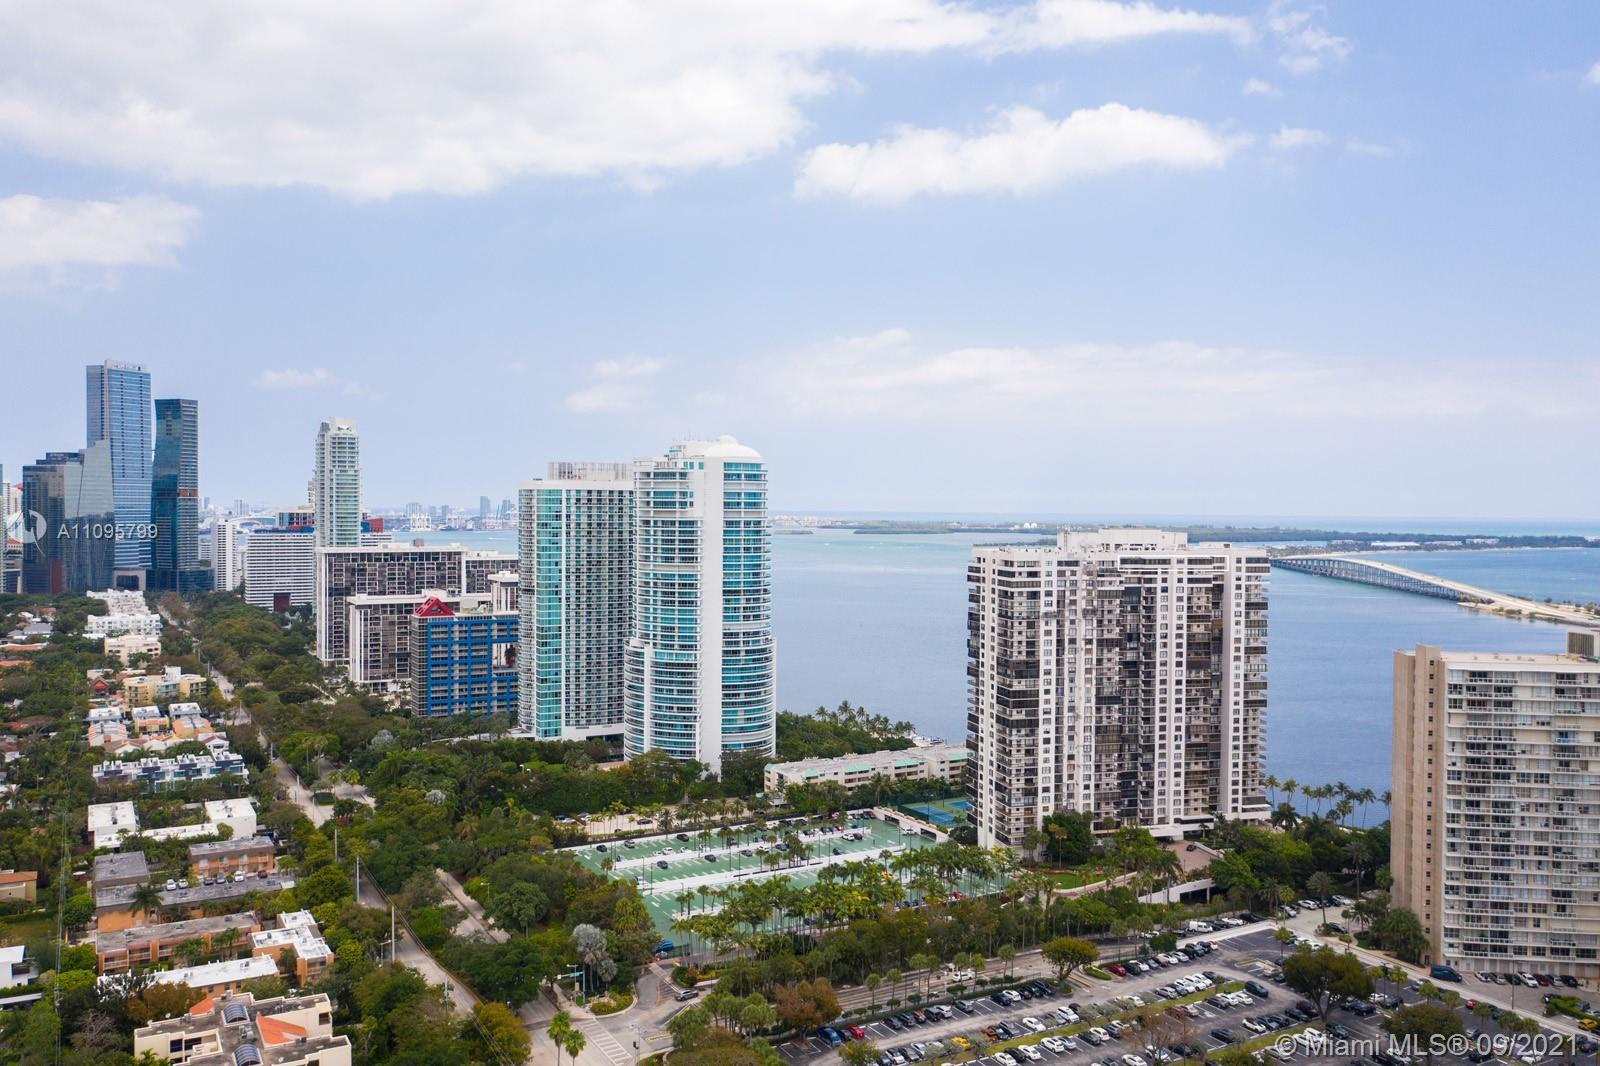 Located in one of Brickell's most recognized addresses, this bright and spacious 1 bedroom, 1.5 bath